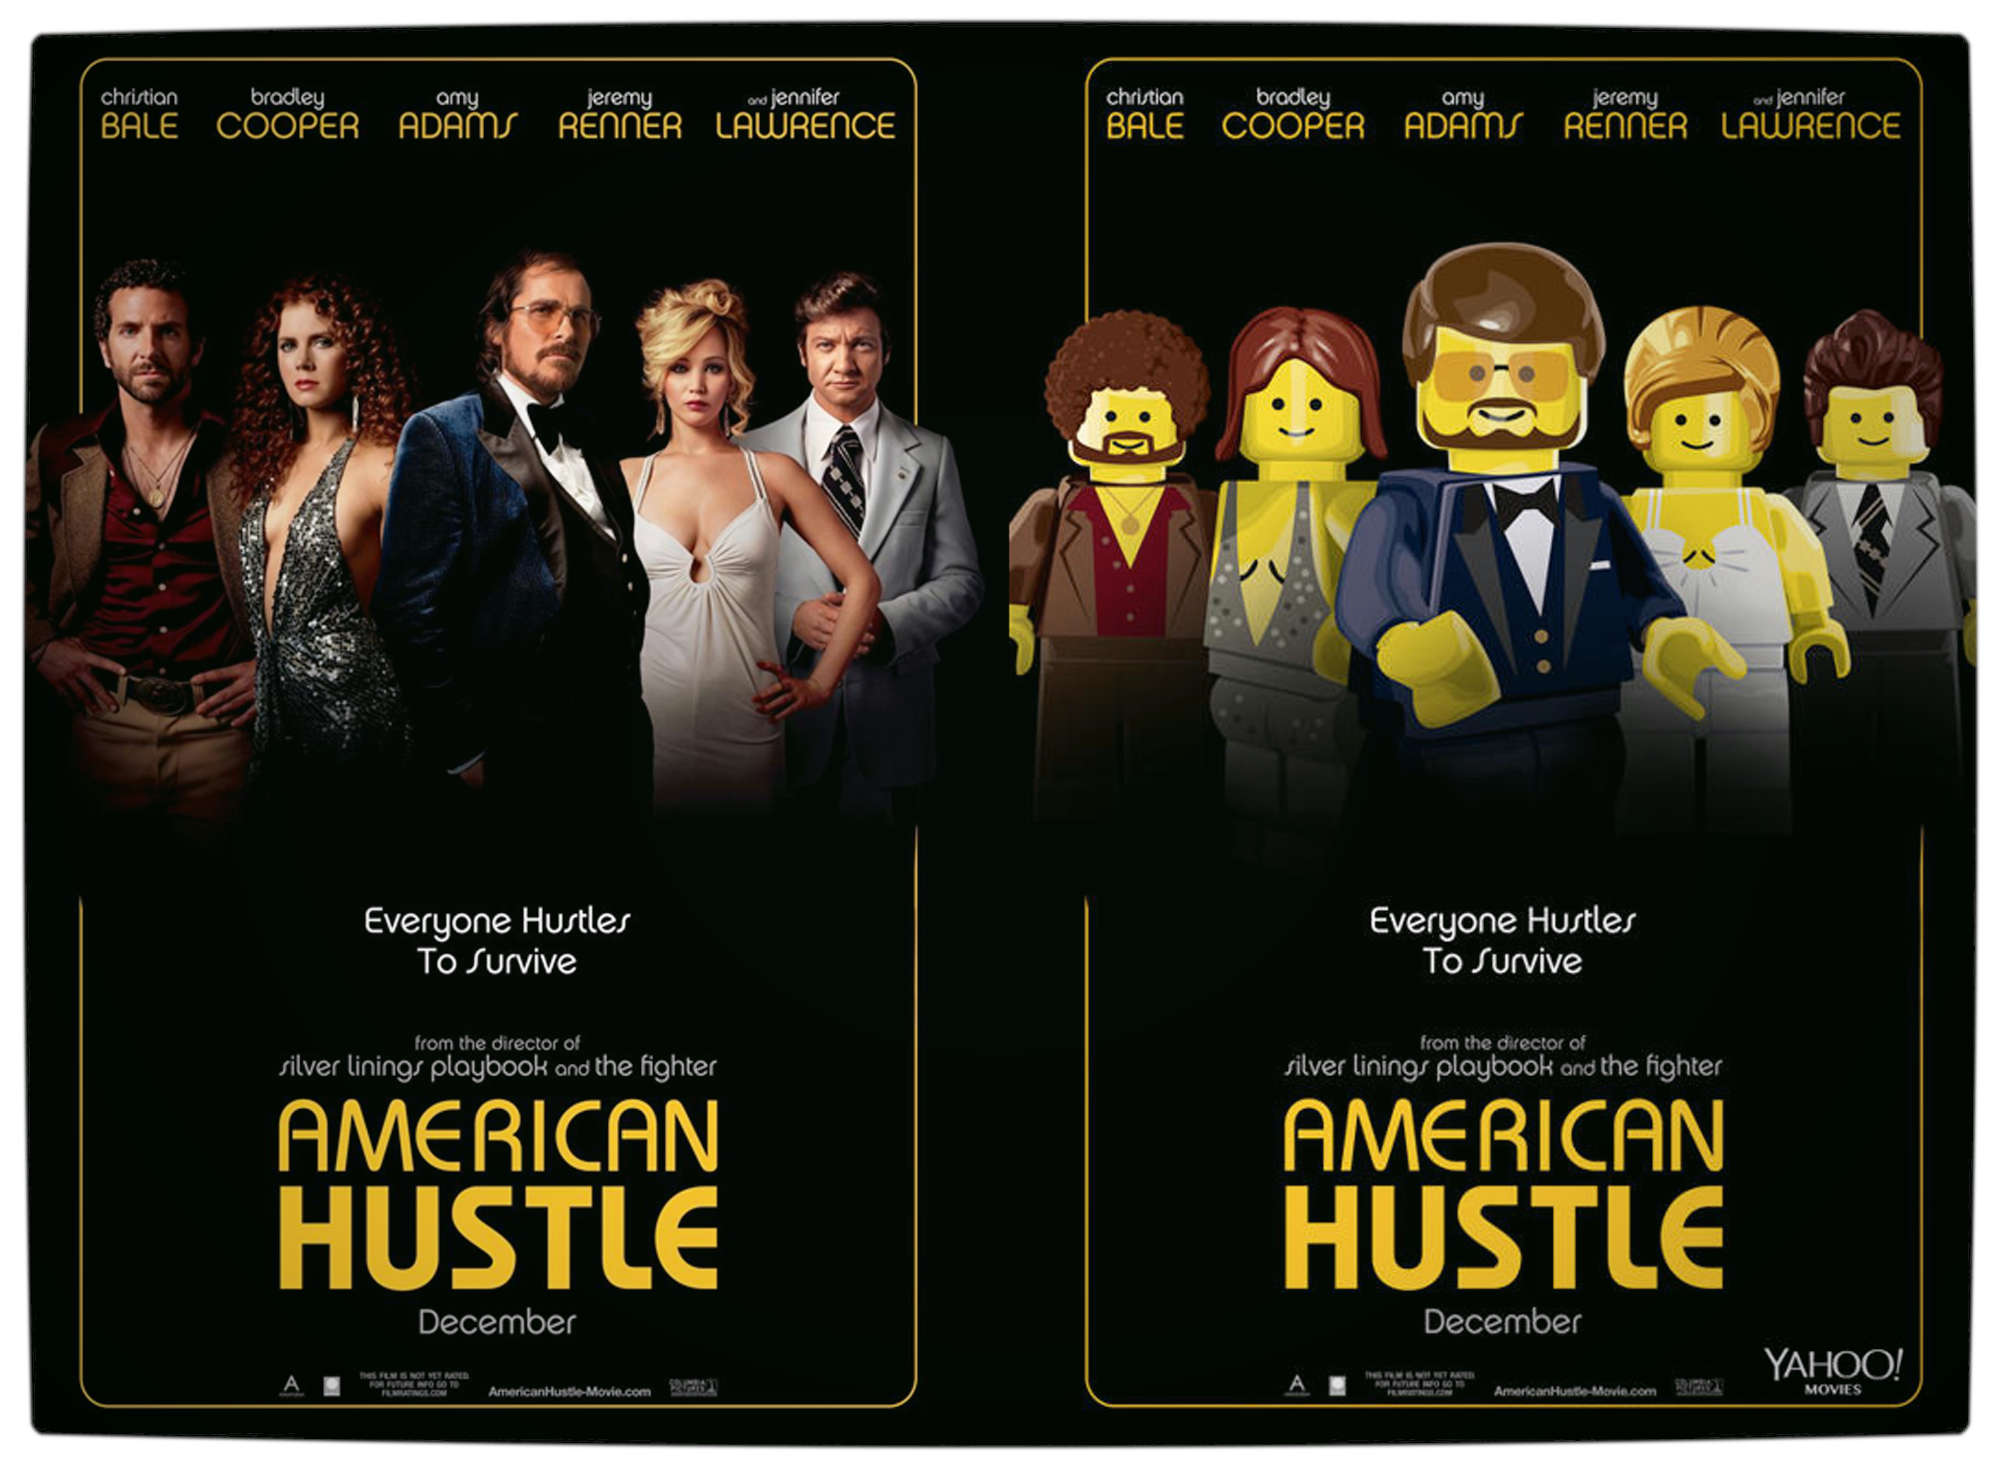 Vamers - Geekosphere - Artistry - 2014's Best Picture Oscar Nominees Recreated as Lego Movies - American Hustle - Final